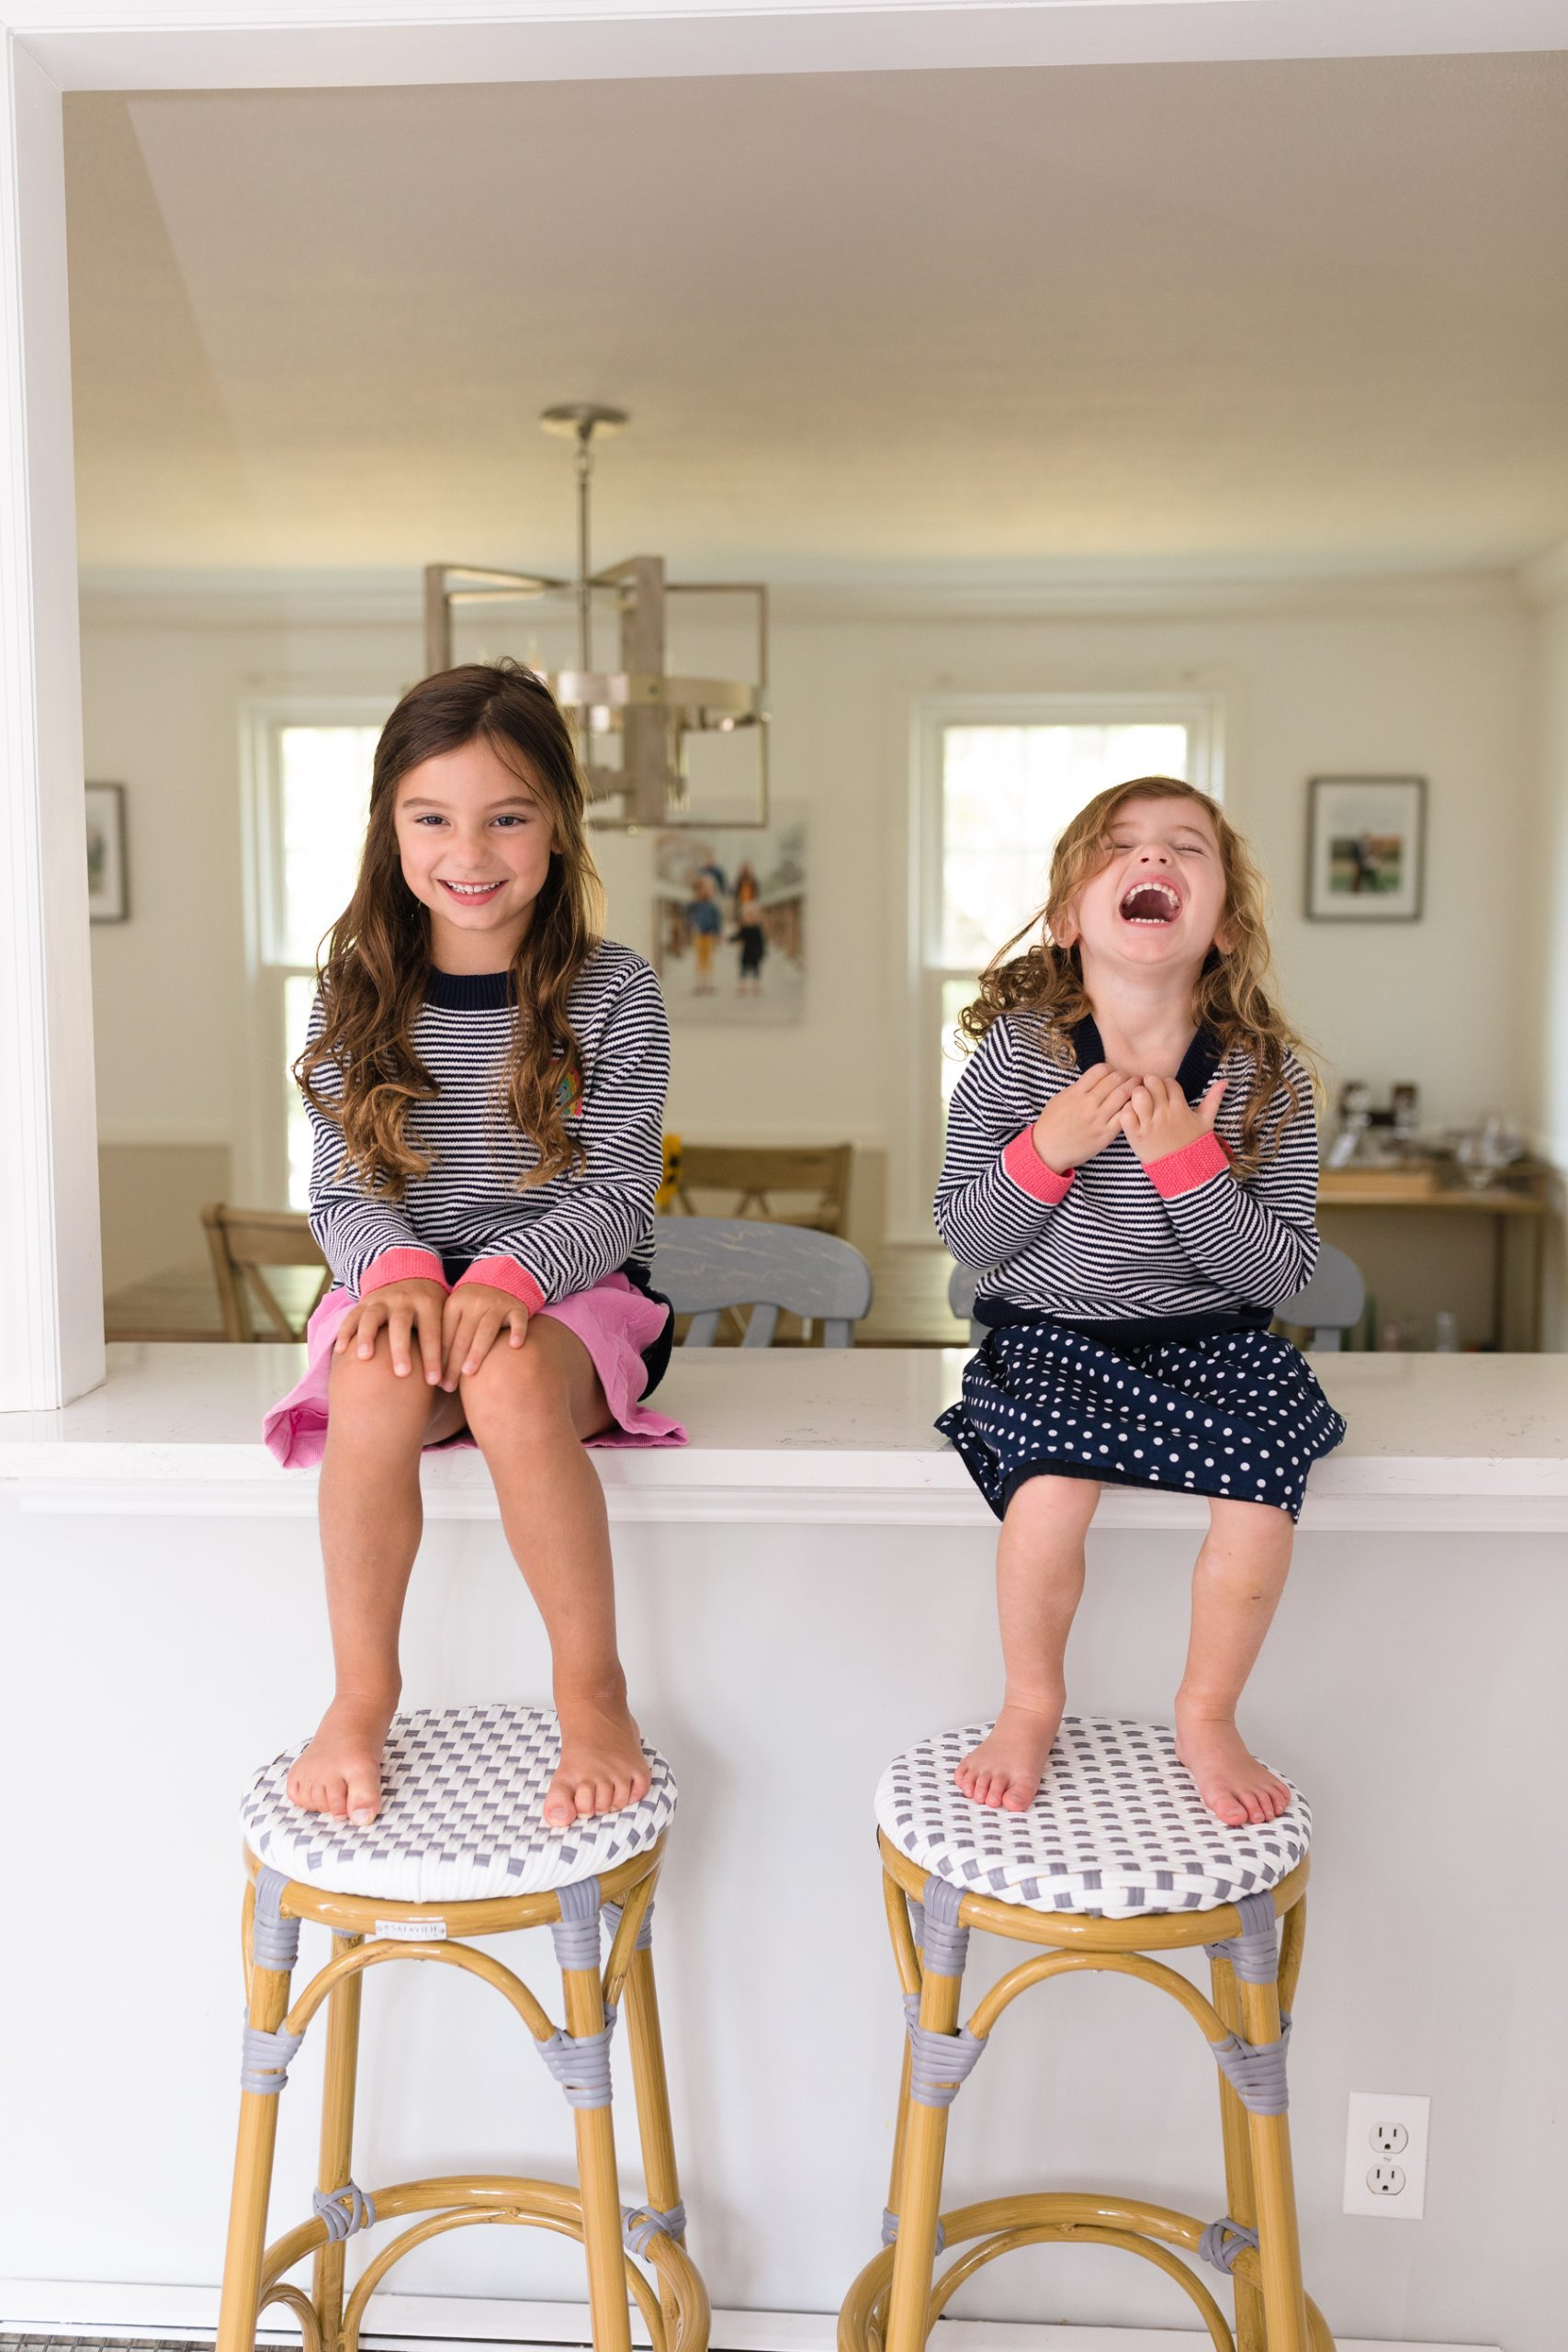 little girls laughing on countertop before school